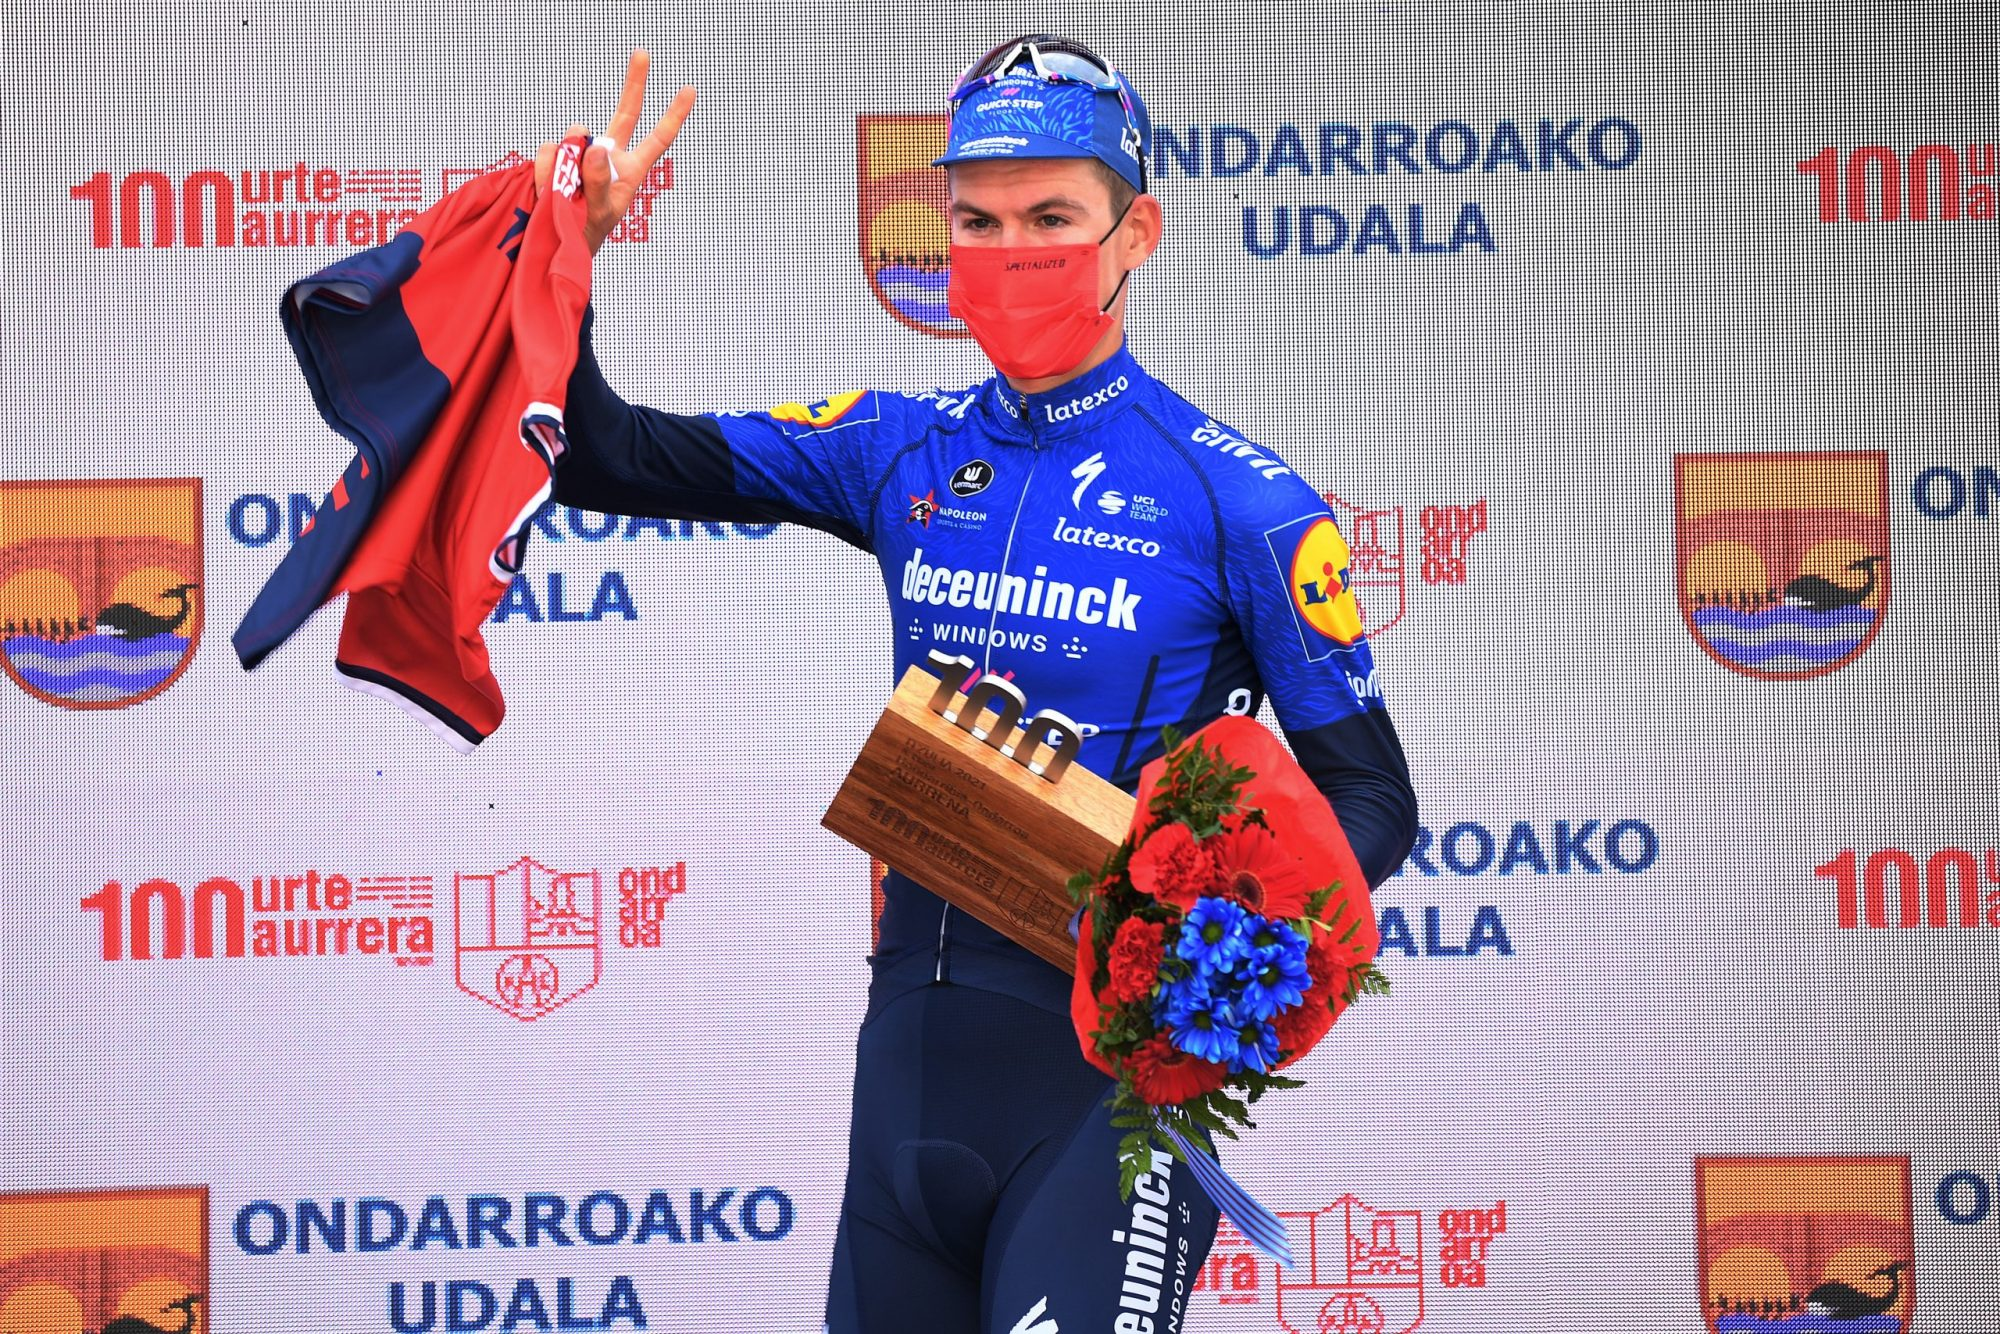 'We inspire each other constantly': Deceuninck – Quick-Step flying after 15th season win at Tour of the Basque Country